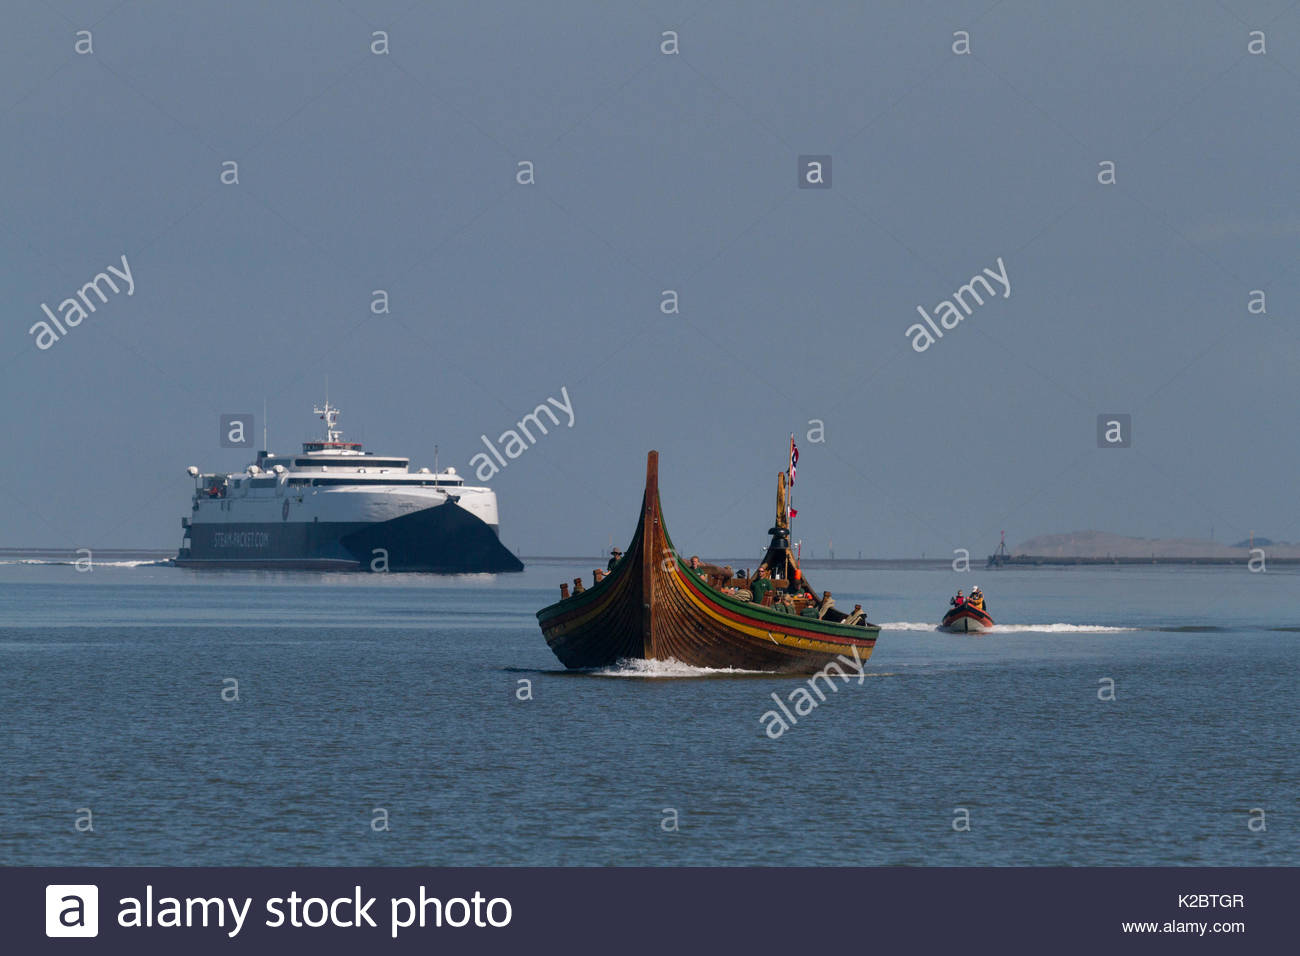 Draken Harald Harfagre (Dragon Harald Fairhair), the largest Viking ship built in modern times, arriving to have her mast repaired. River Mersey, Merseyside, United Kingdom, July 2014. All non-editorial uses must be cleared individually. - Stock Image